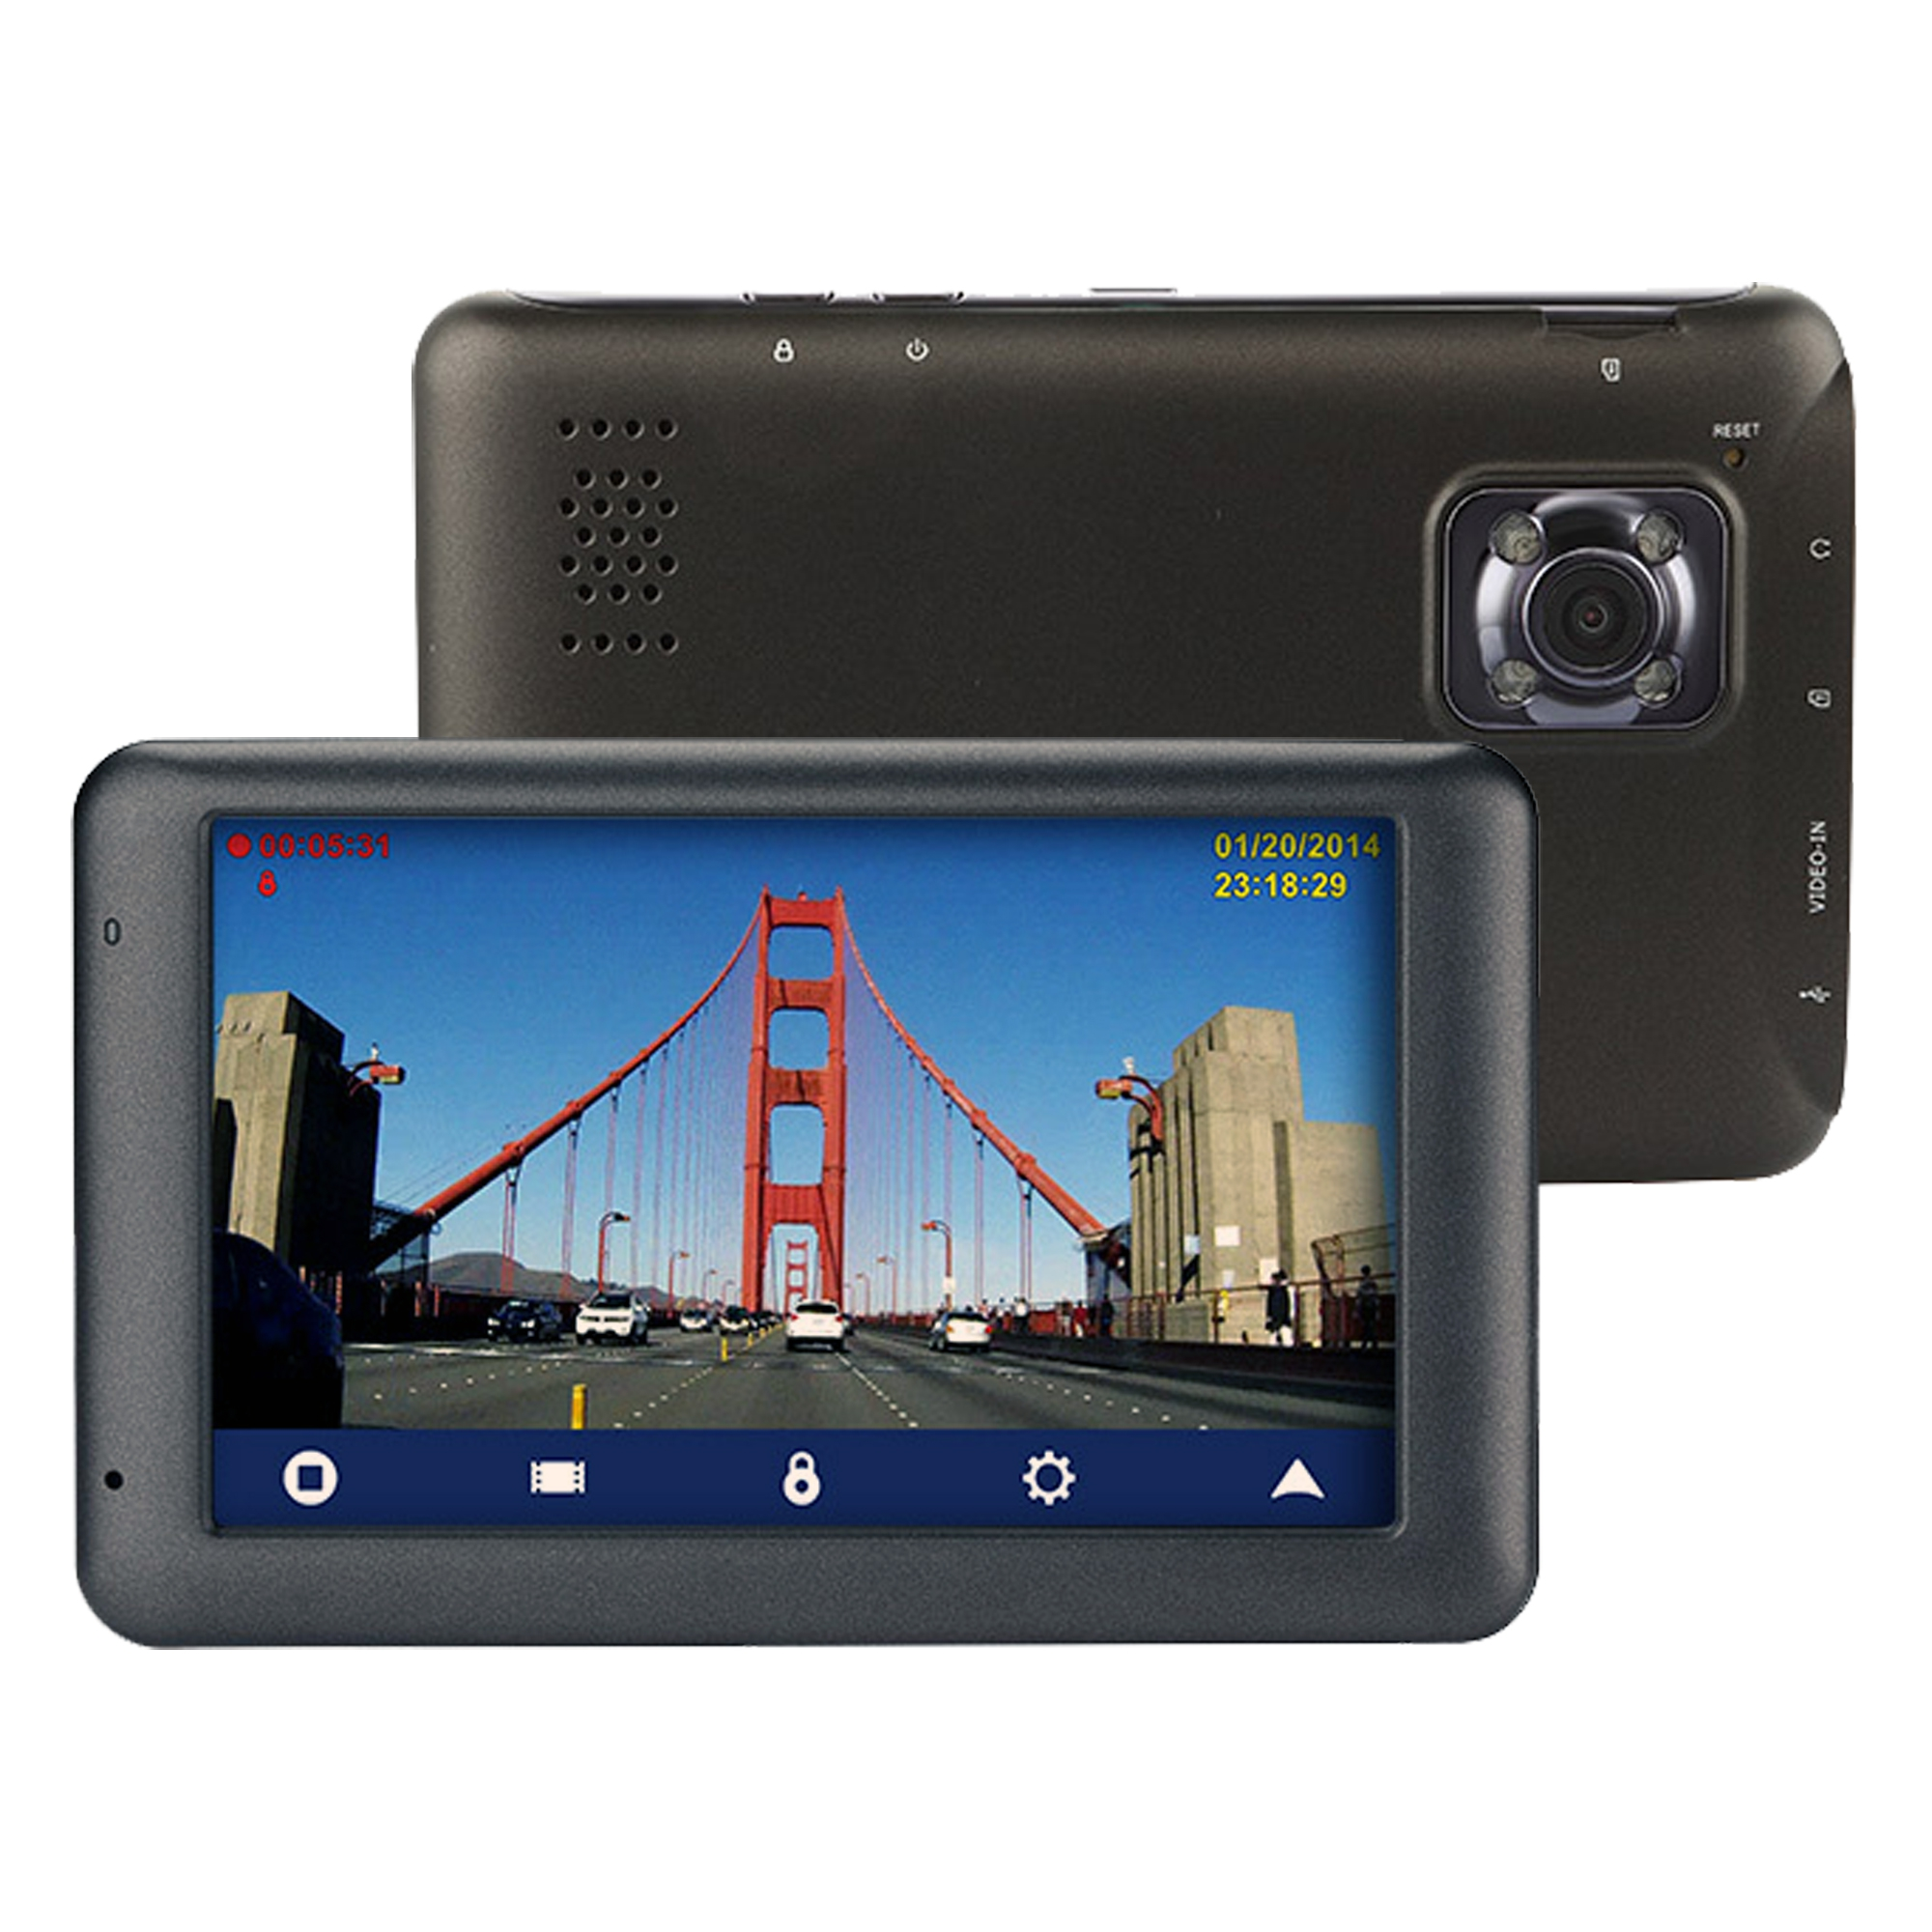 Magellan RoadMate 6230-LMX 5-inch GPS Navigator with Built-in Dashcam 8GB SD card included